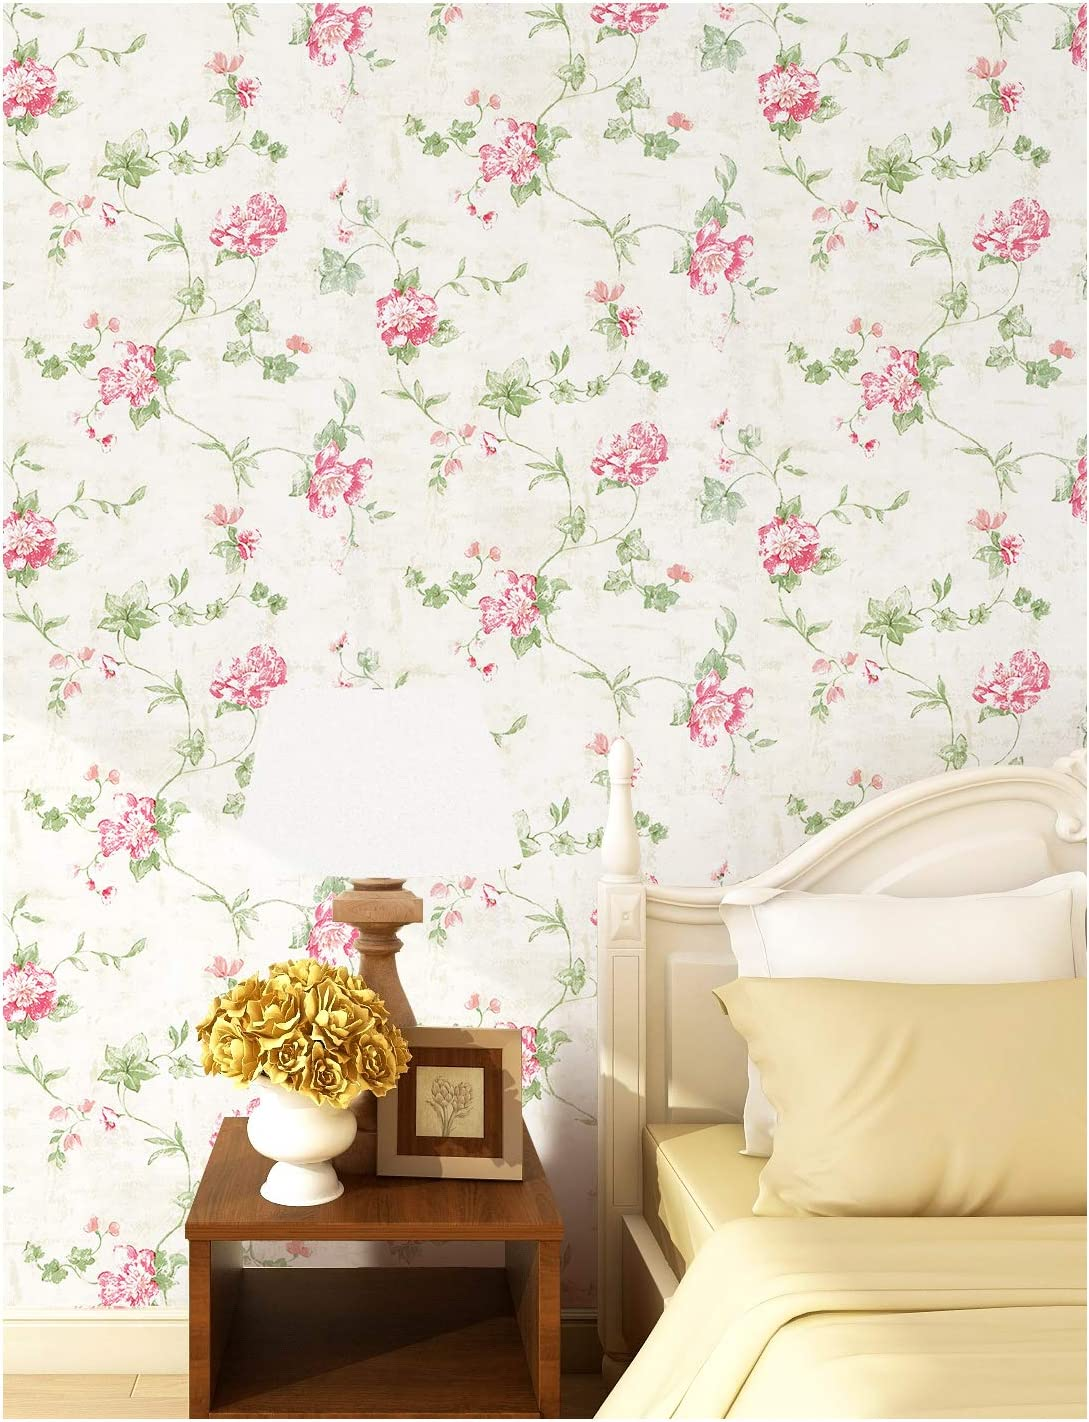 Haokhome 632664 Victoria Floral Wallpaper Peel And Stick Wall